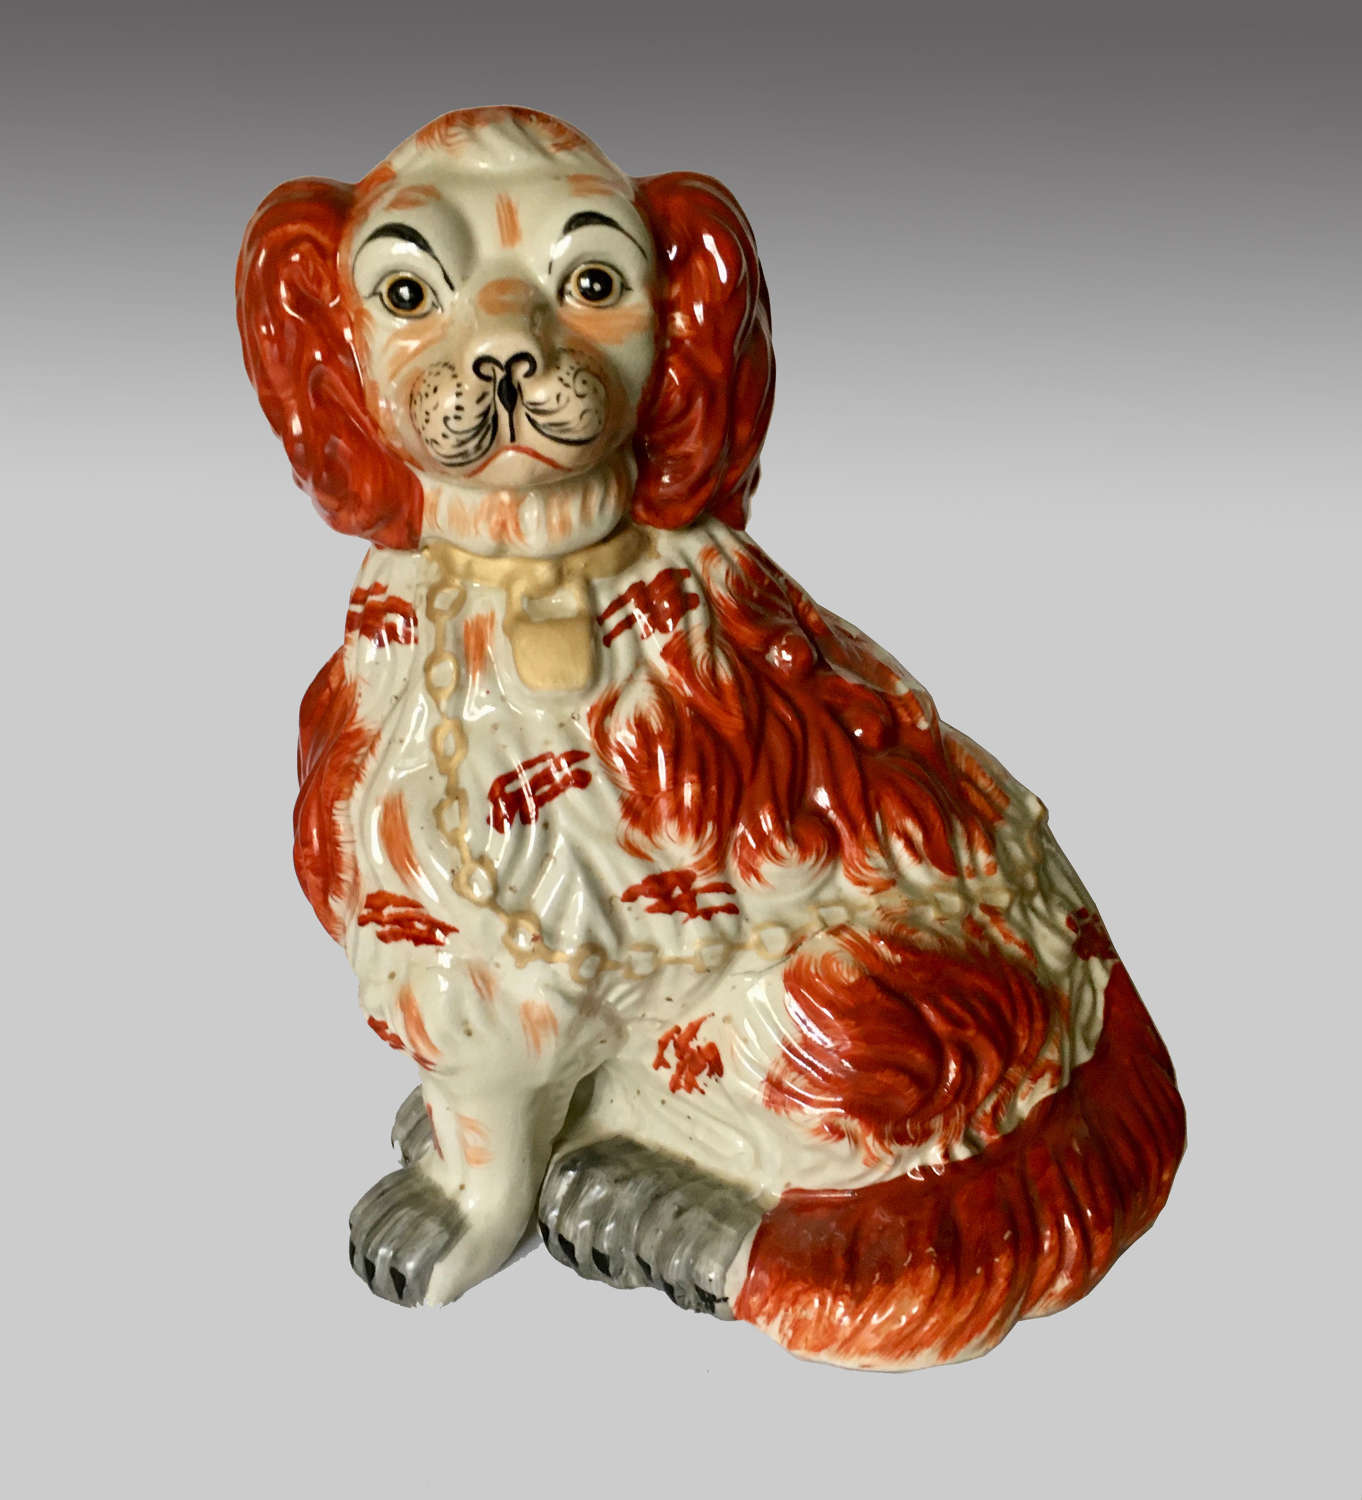 Large vintage Staffordshire pottery Wally dog